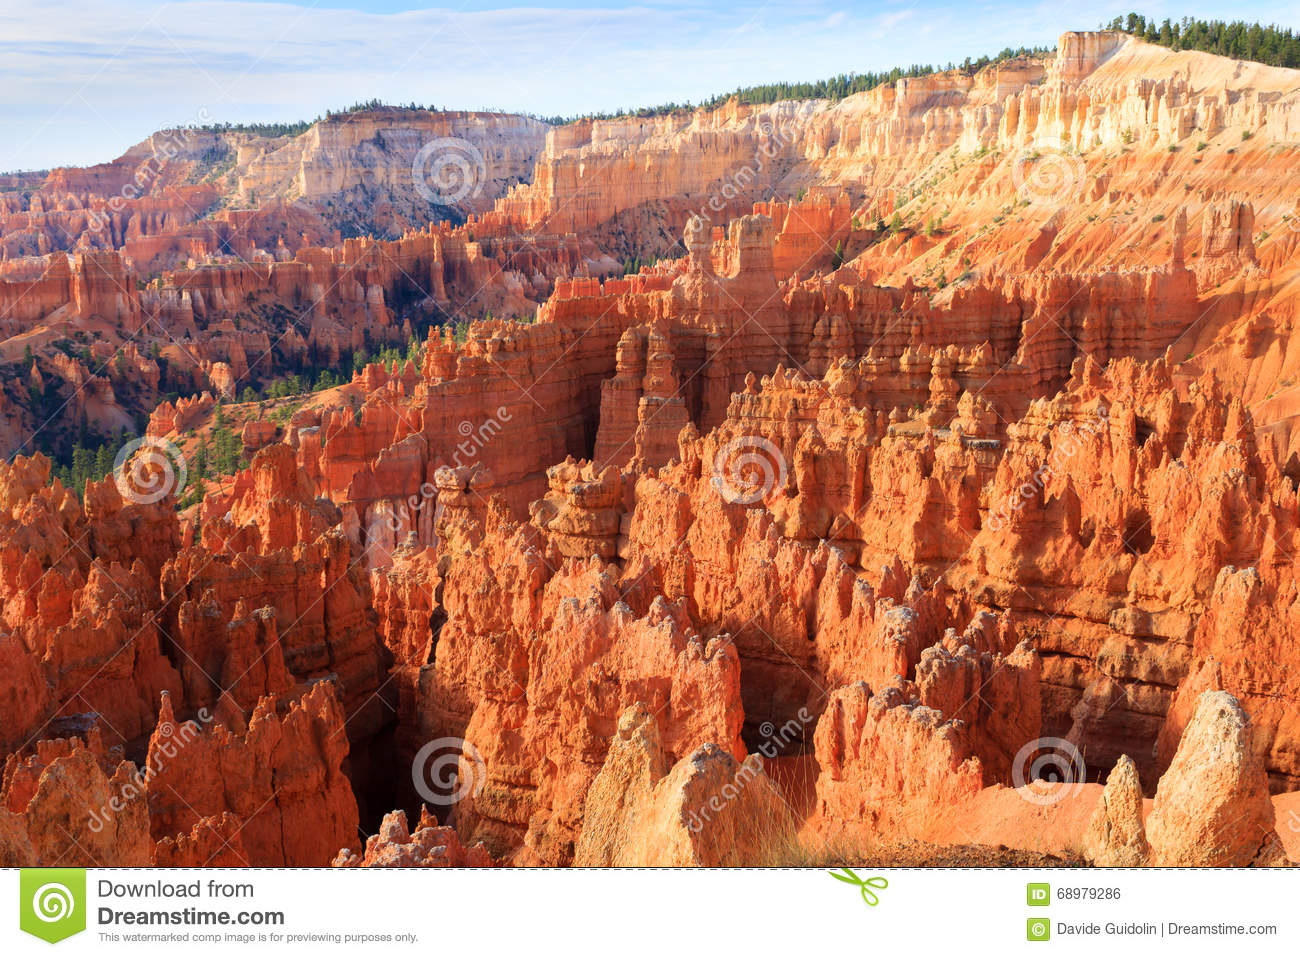 Panorama de Bryce Canyon National Park, los E.E.U.U.